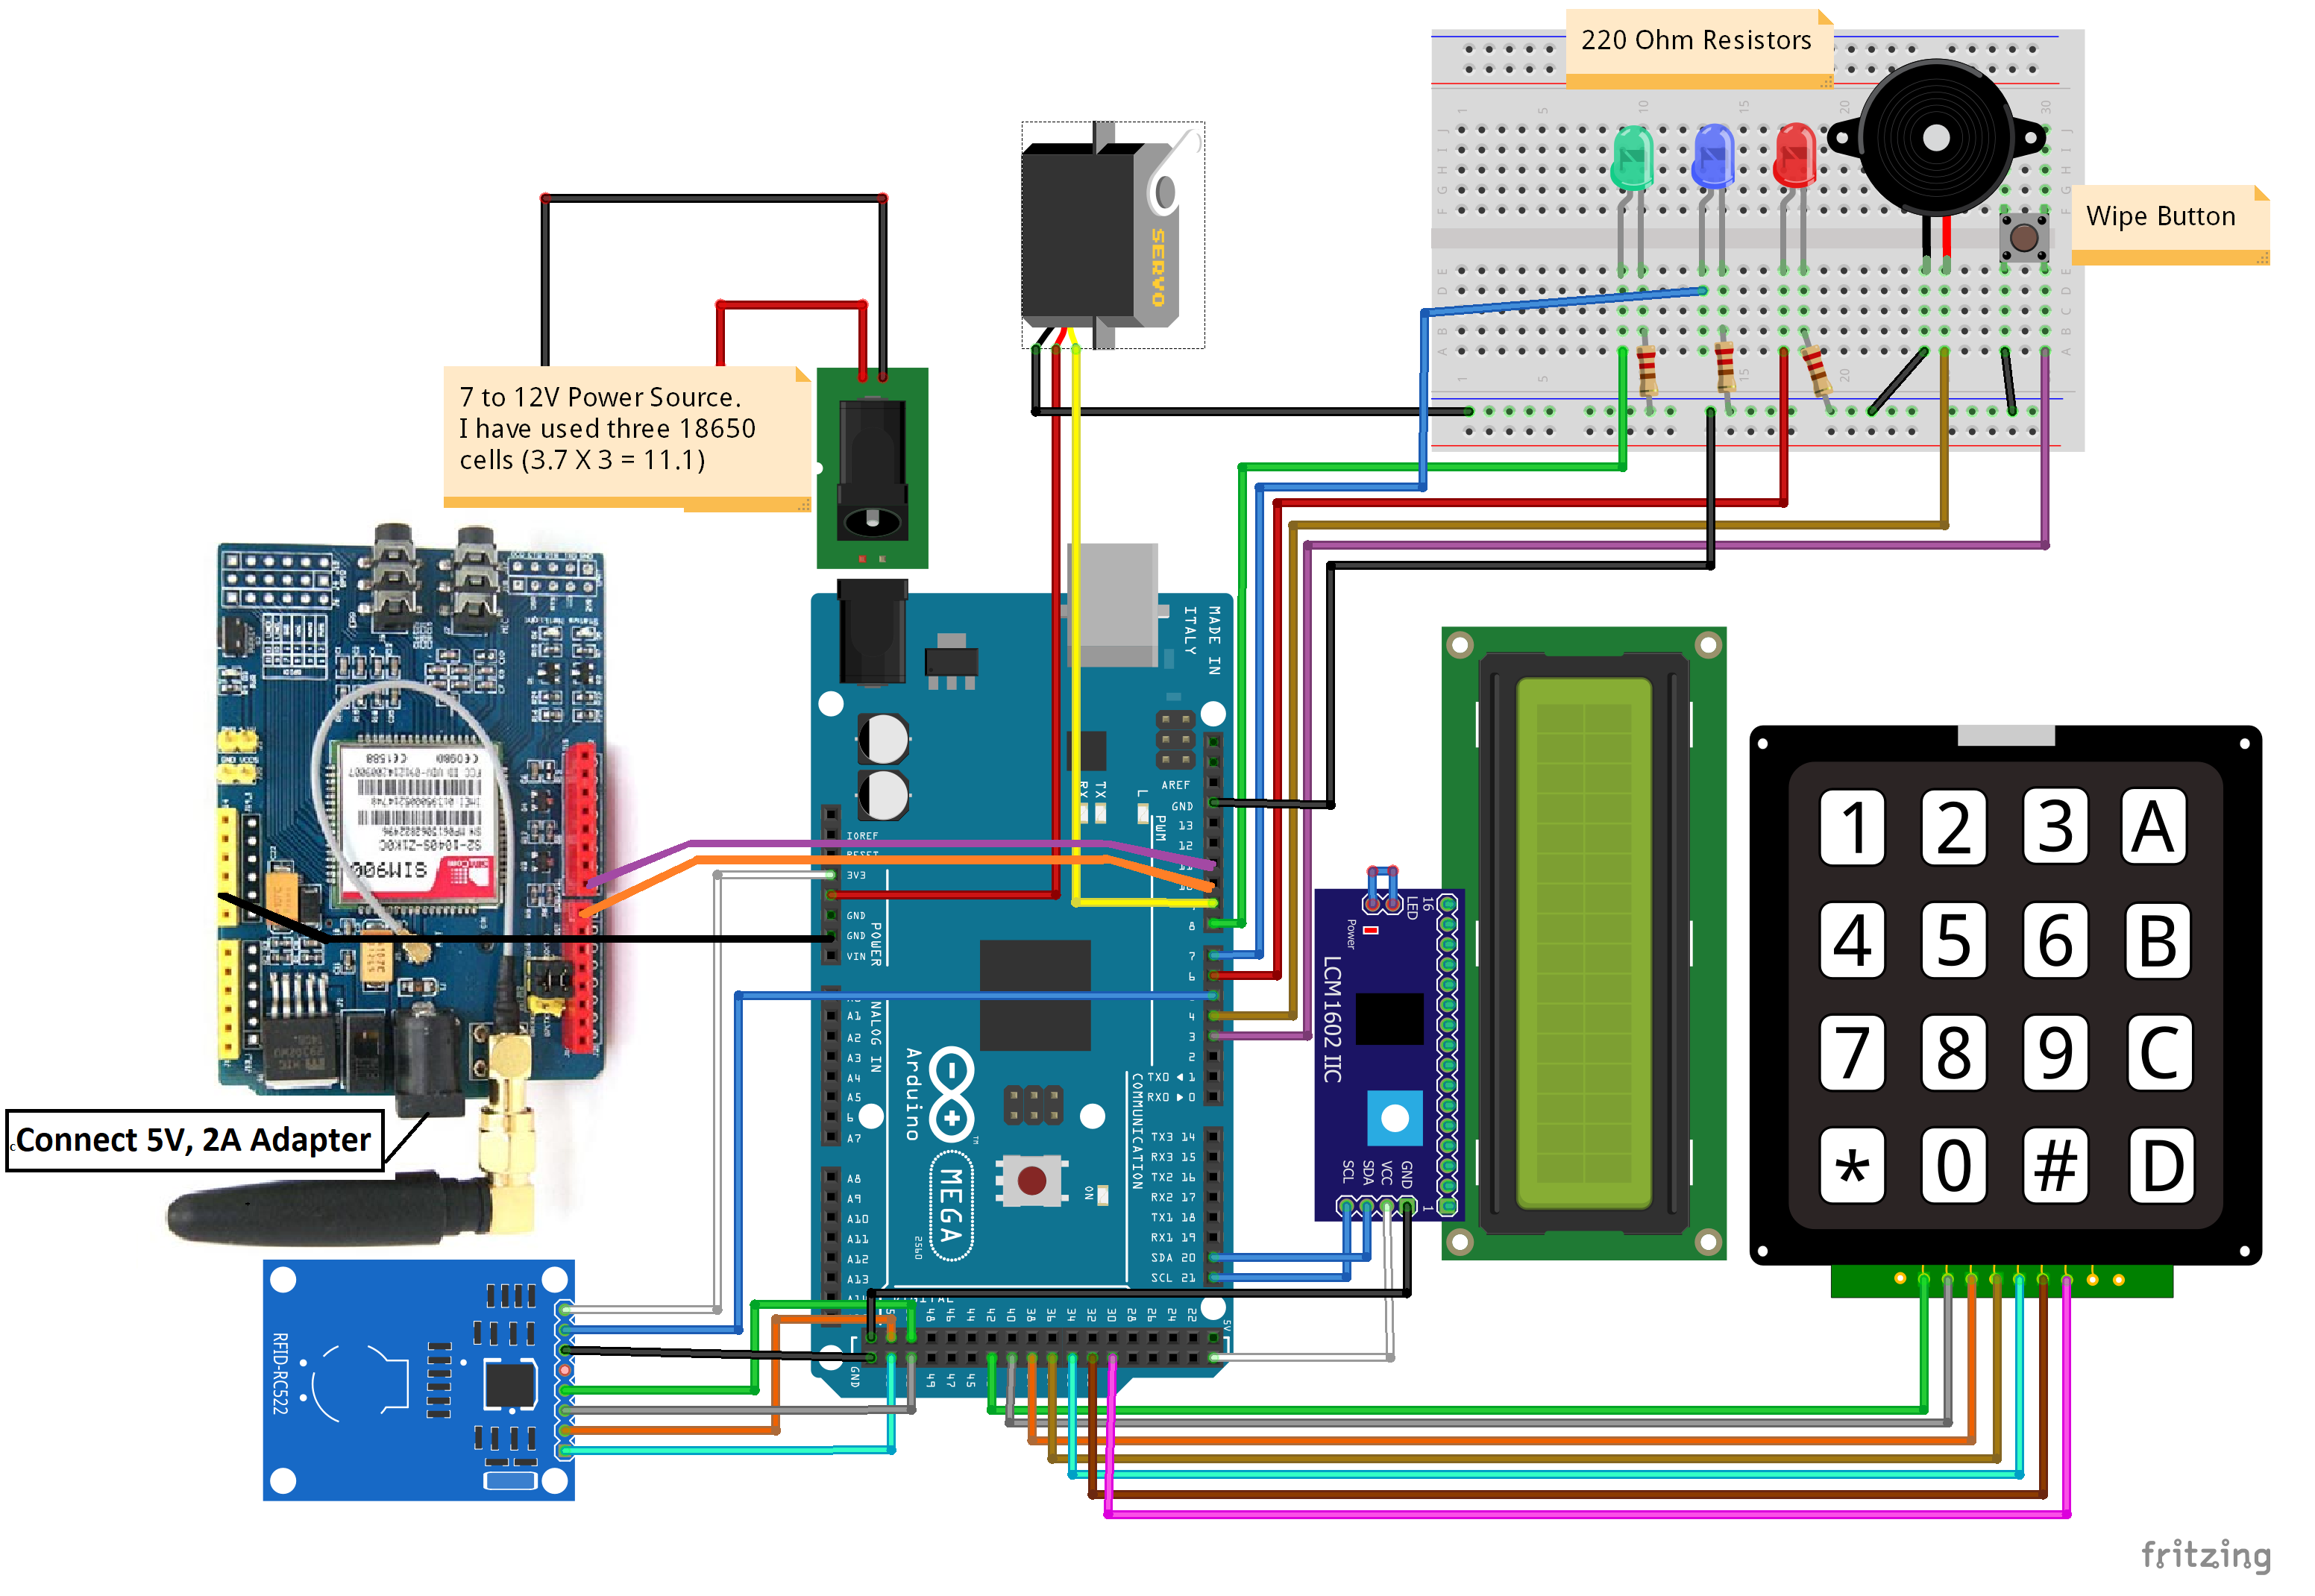 Rfid And Keypad Based Access Control And Alert System Using Arduino Bb P3ks1fbqwb Access Control Arduino Access Control System